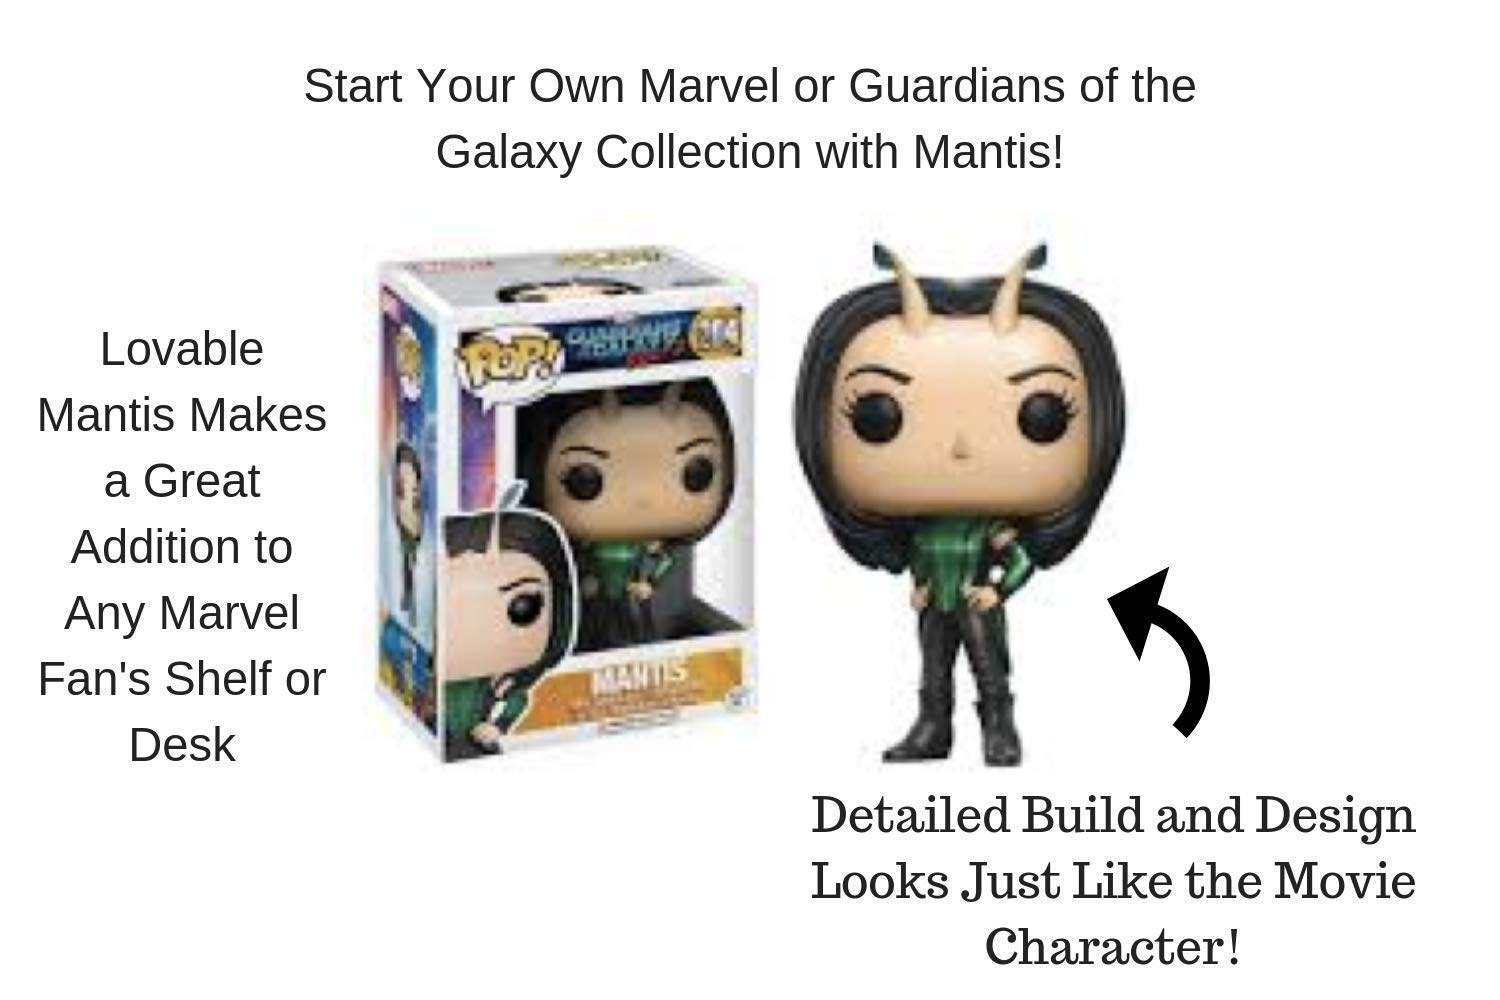 Adorable Mantis Toy Figurine Detailing Designed for Ages 5 and Up 12778 Accessory Toys /& Games Miscellaneous Funko POP Vinyl Figures Movie Collection: Guardians of the Galaxy 2